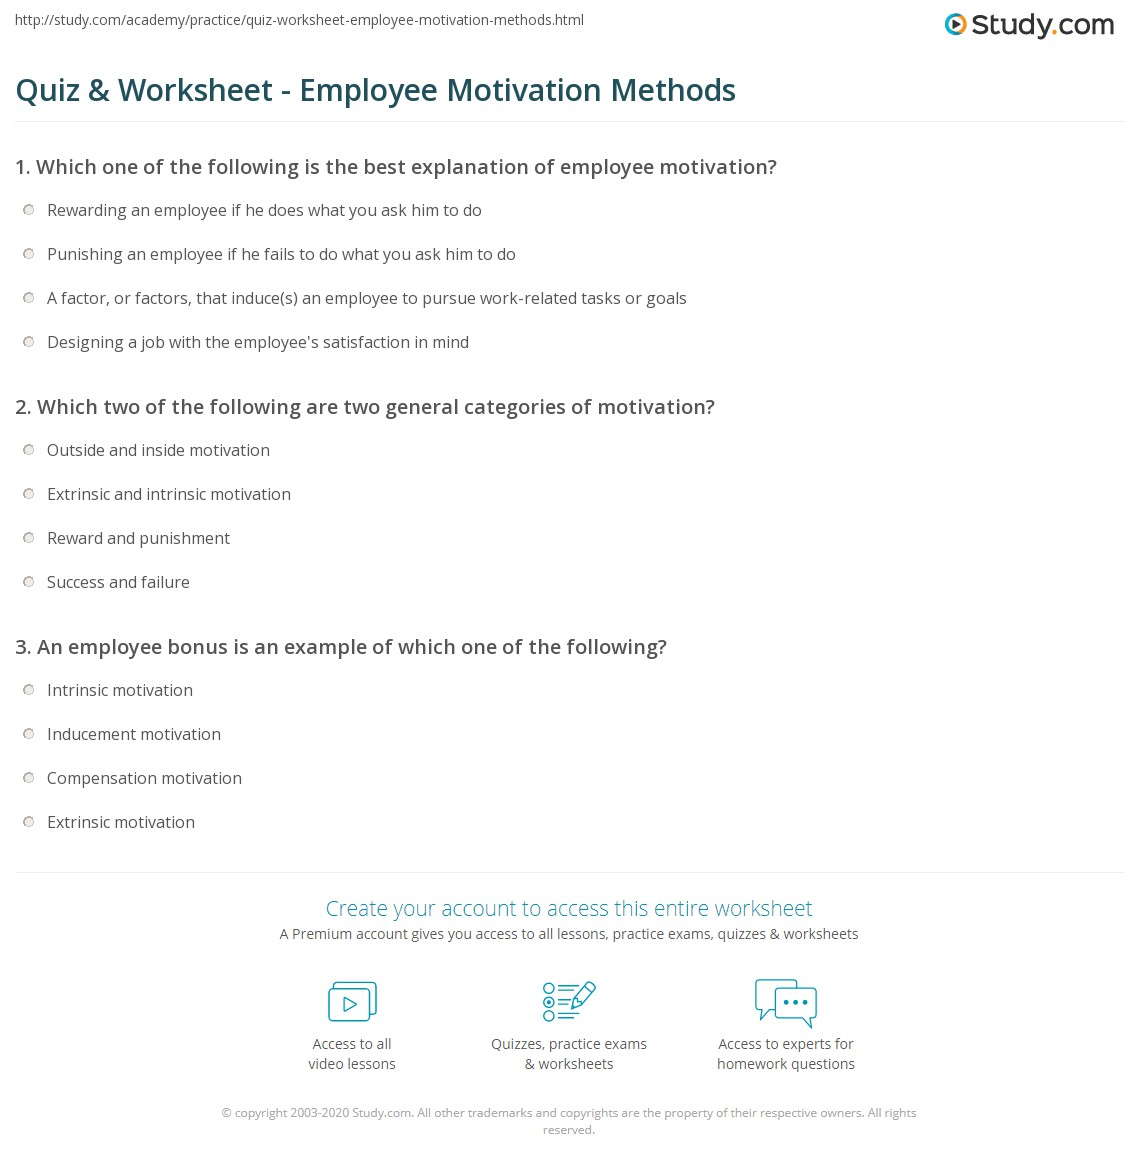 quiz worksheet employee motivation methods com print what is employee motivation theories methods factors worksheet